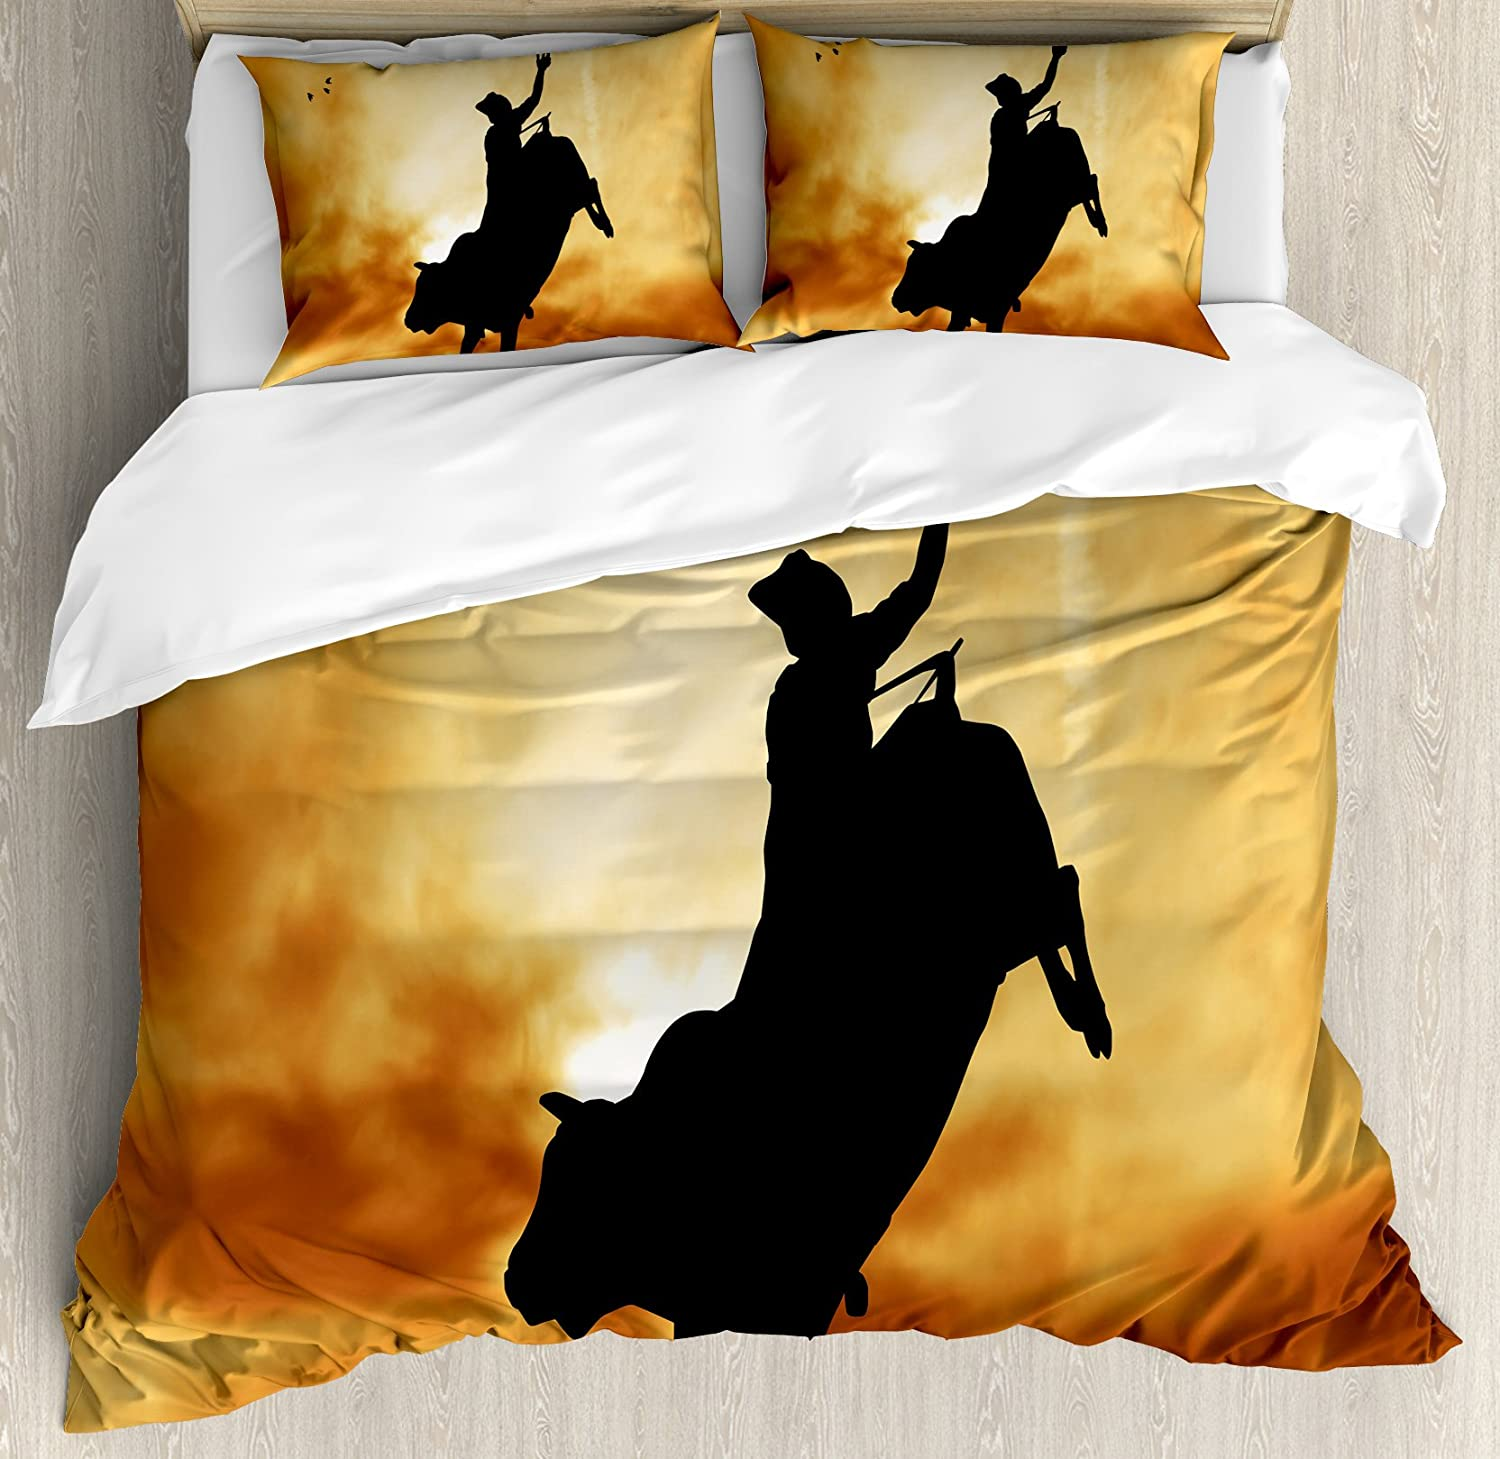 Ambesonne Store Western Duvet Cover Outlet SALE Set Silhouette at Bull Rider Suns